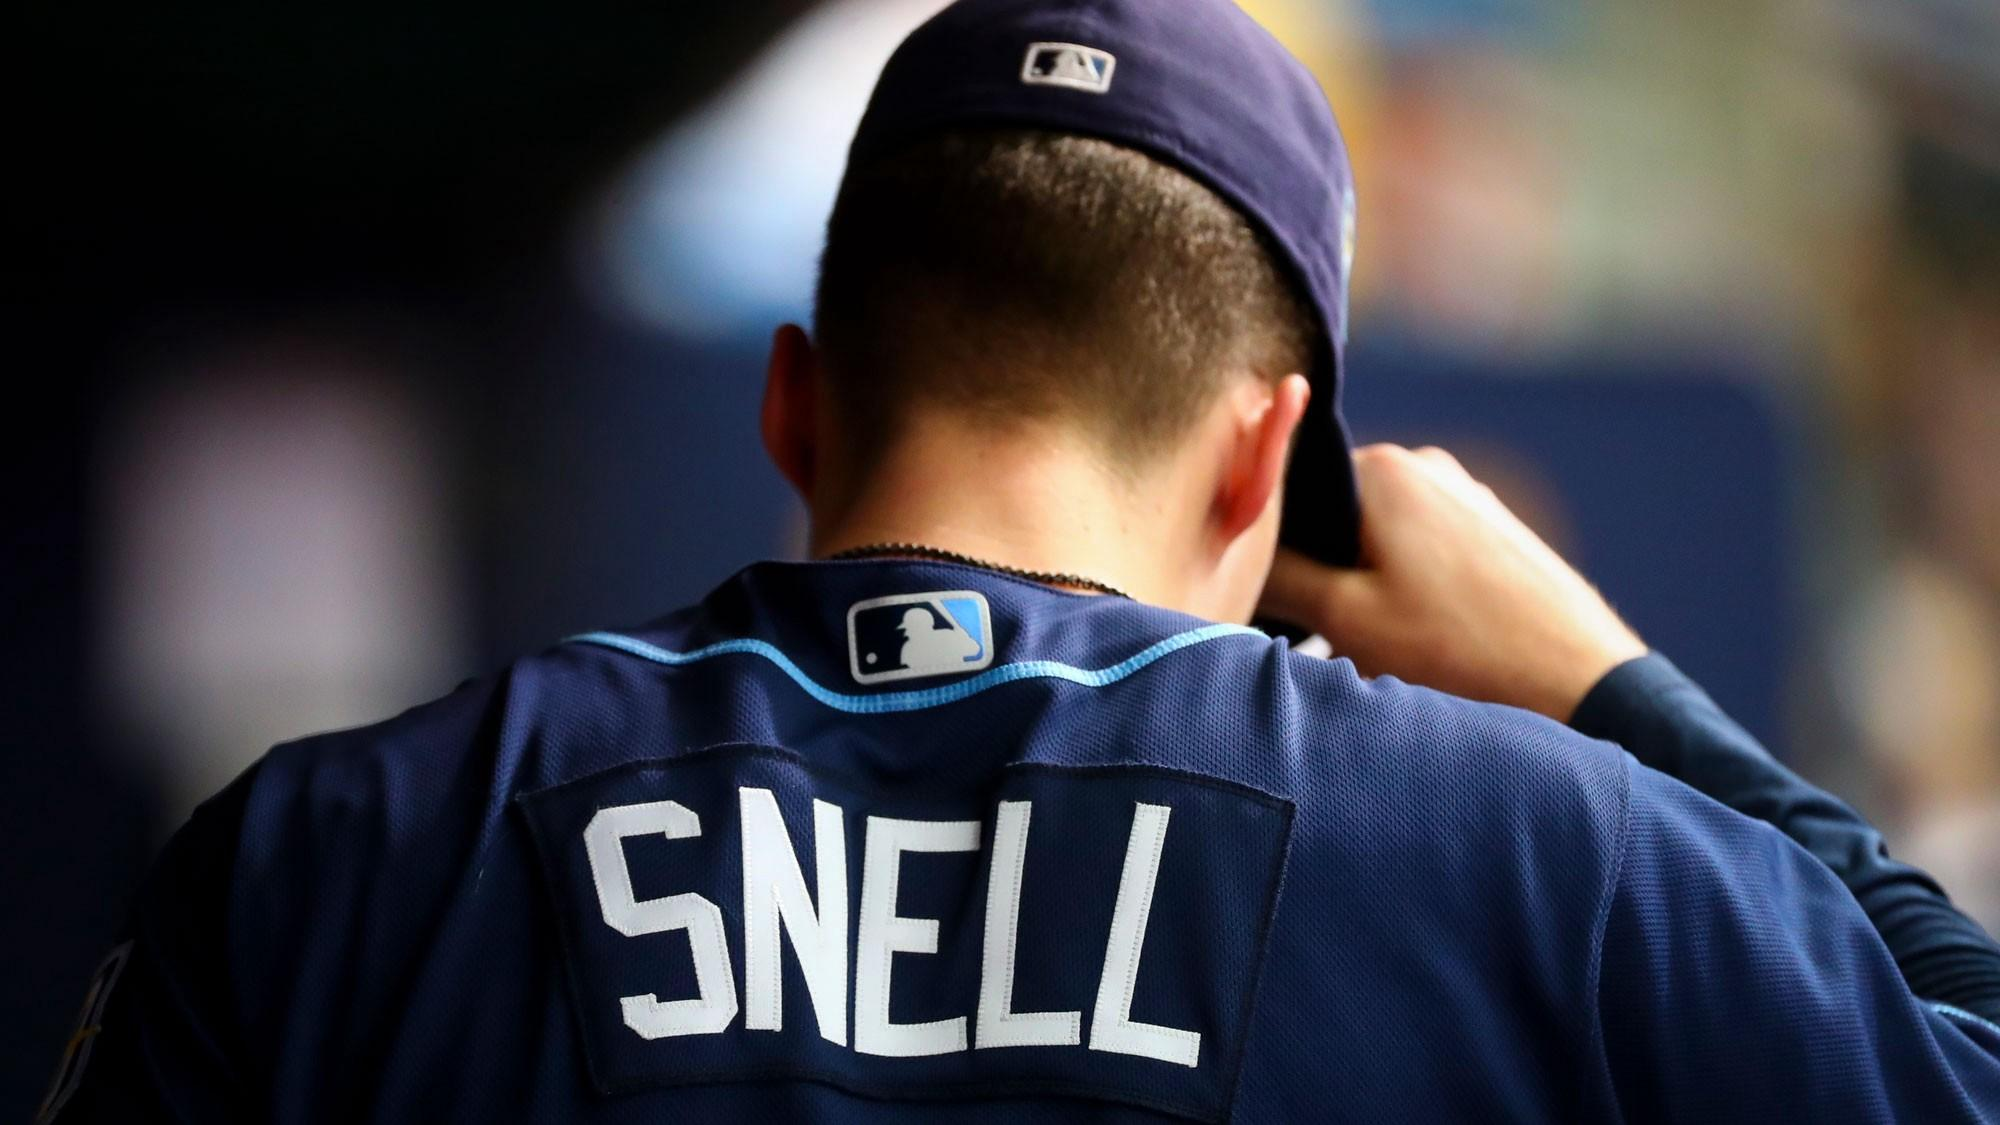 Blake Snell donates jersey from 21st win to the Baseball Hall of Fame